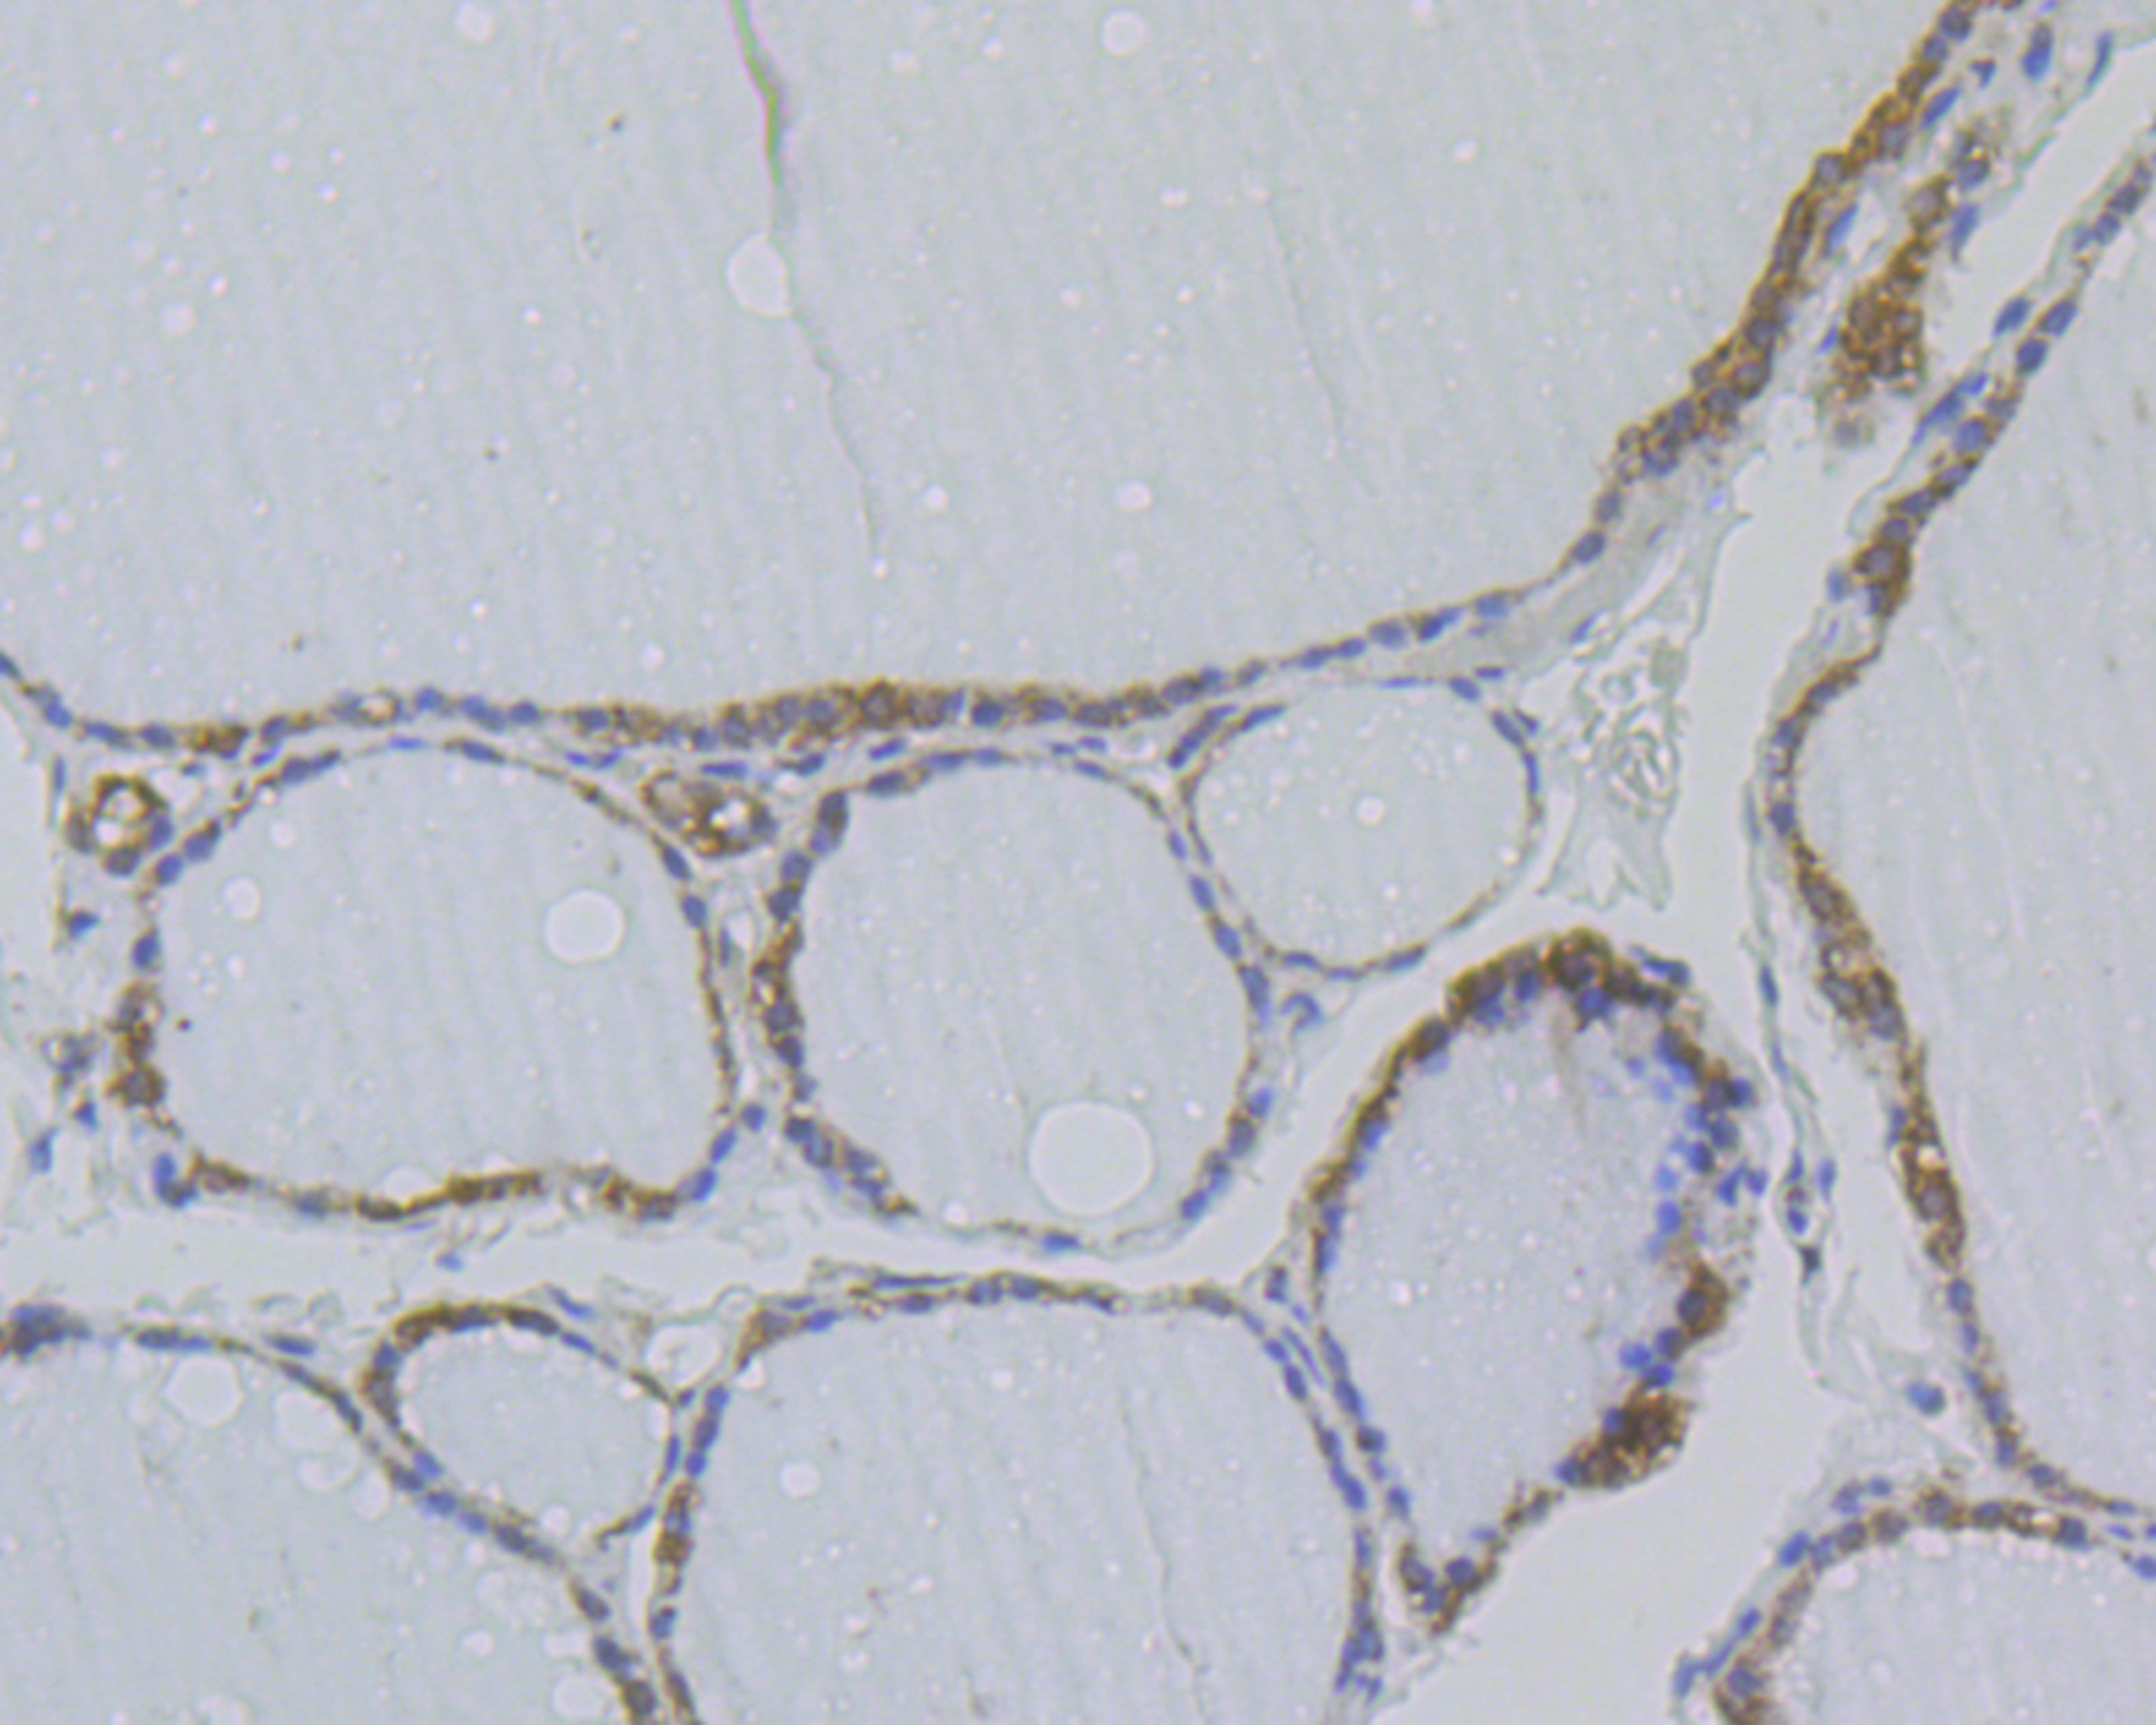 Immunohistochemical analysis of paraffin-embedded human thyroid gland tissue using anti-NM23 antibody. The section was pre-treated using heat mediated antigen retrieval with sodium citrate buffer (pH 6.0) for 20 minutes. The tissues were blocked in 5% BSA for 30 minutes at room temperature, washed with ddH2O and PBS, and then probed with the antibody (EM1801-20) at 1/200 dilution, for 30 minutes at room temperature and detected using an HRP conjugated compact polymer system. DAB was used as the chrogen. Counter stained with hematoxylin and mounted with DPX.